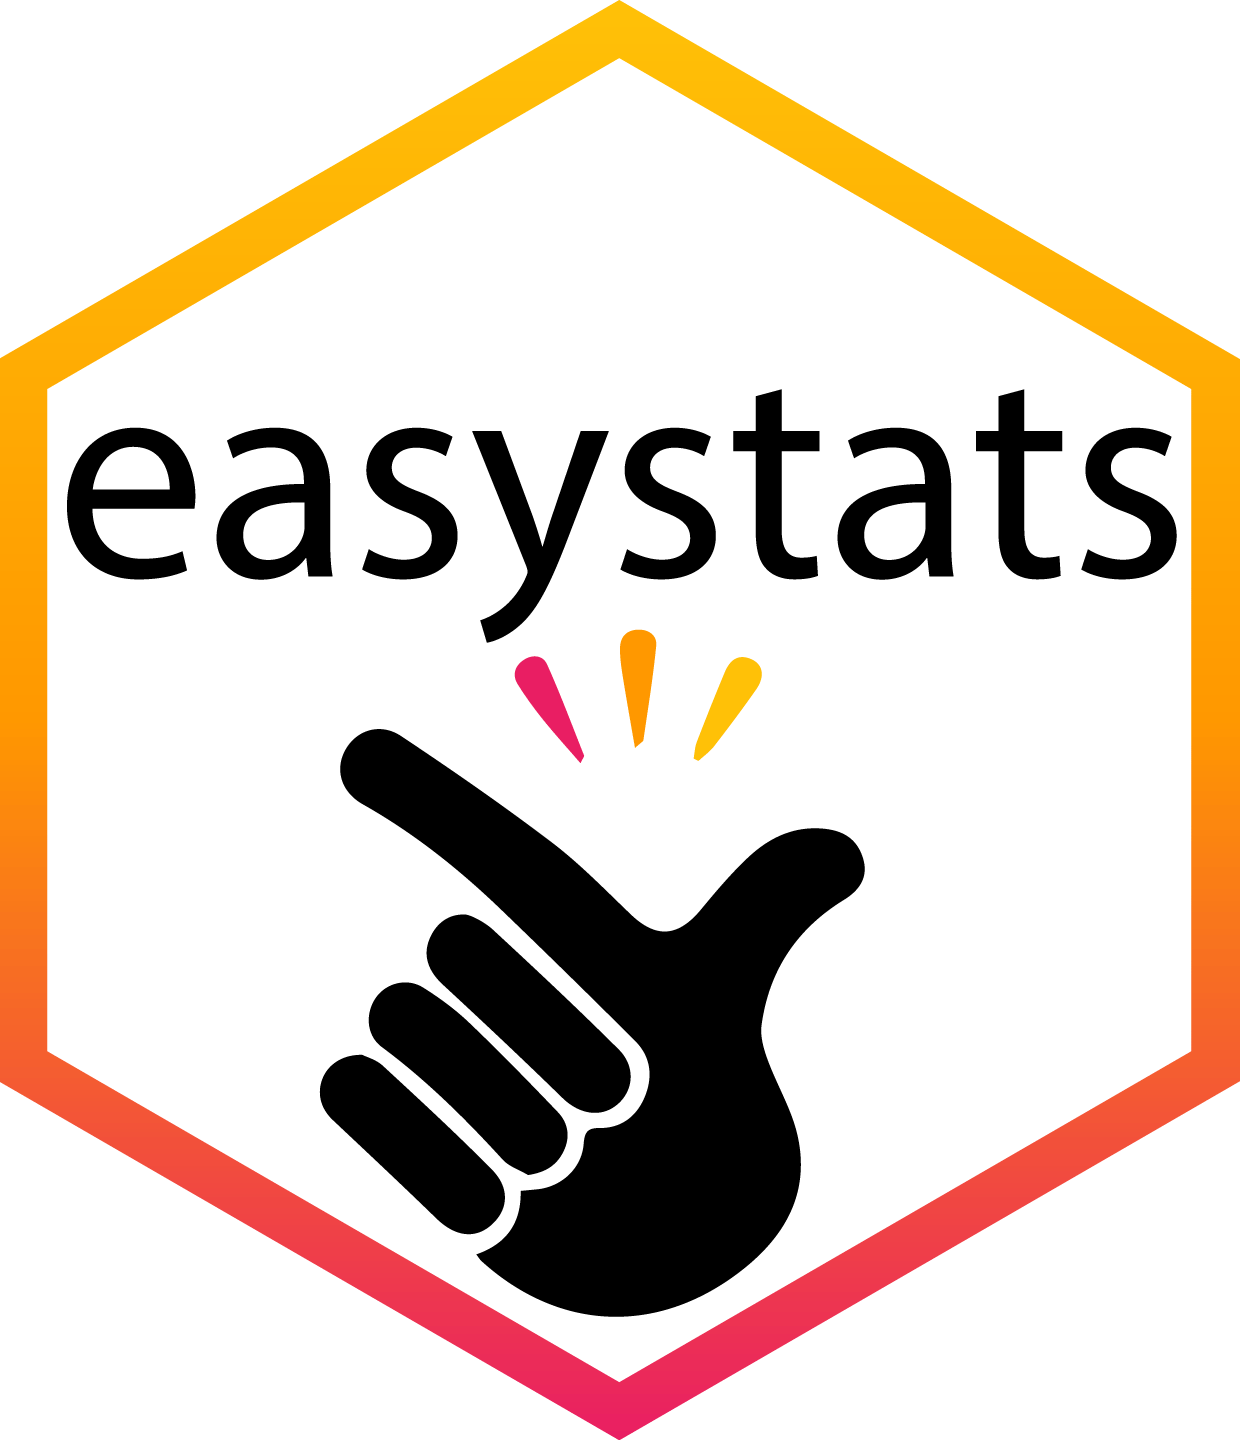 easystats: one year already. What's next?